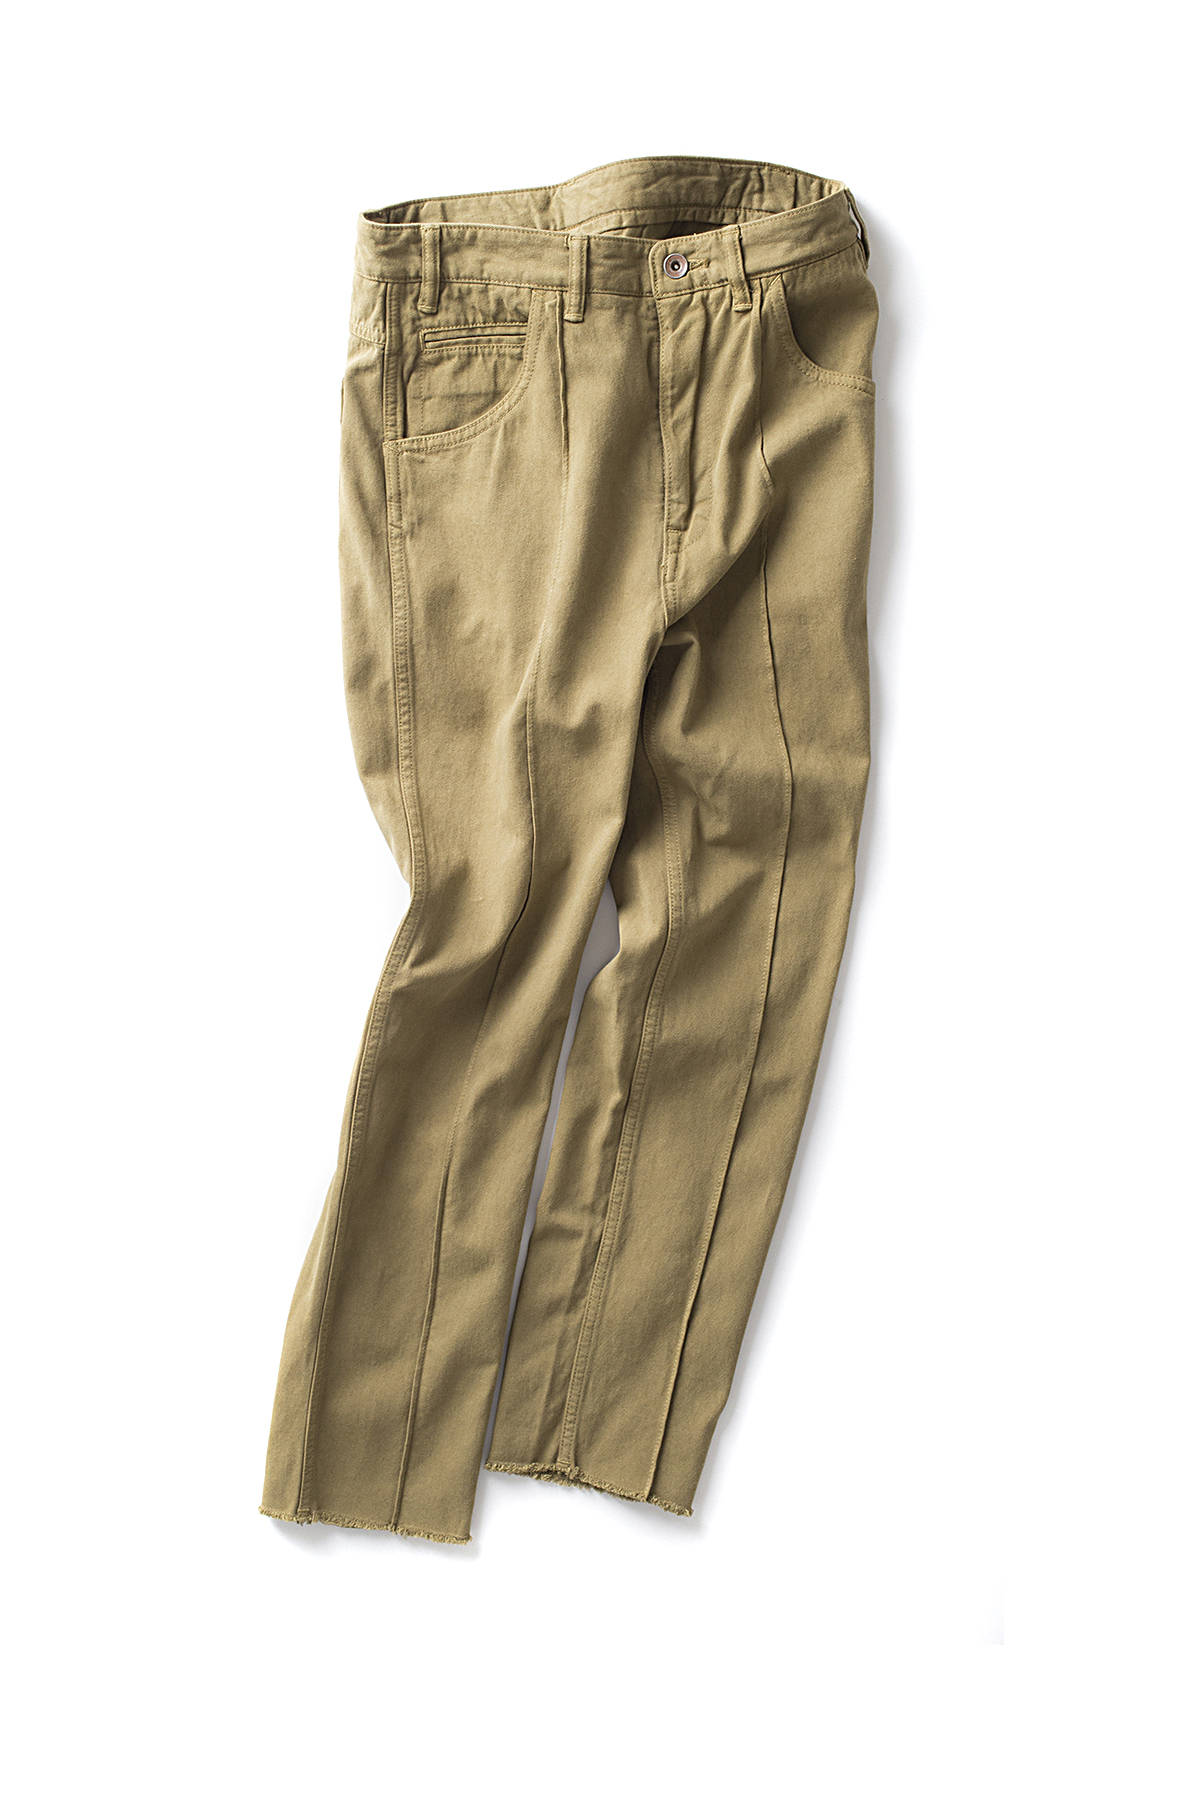 bukht : Slim Tapered Chino Pants (LT.Khaki)